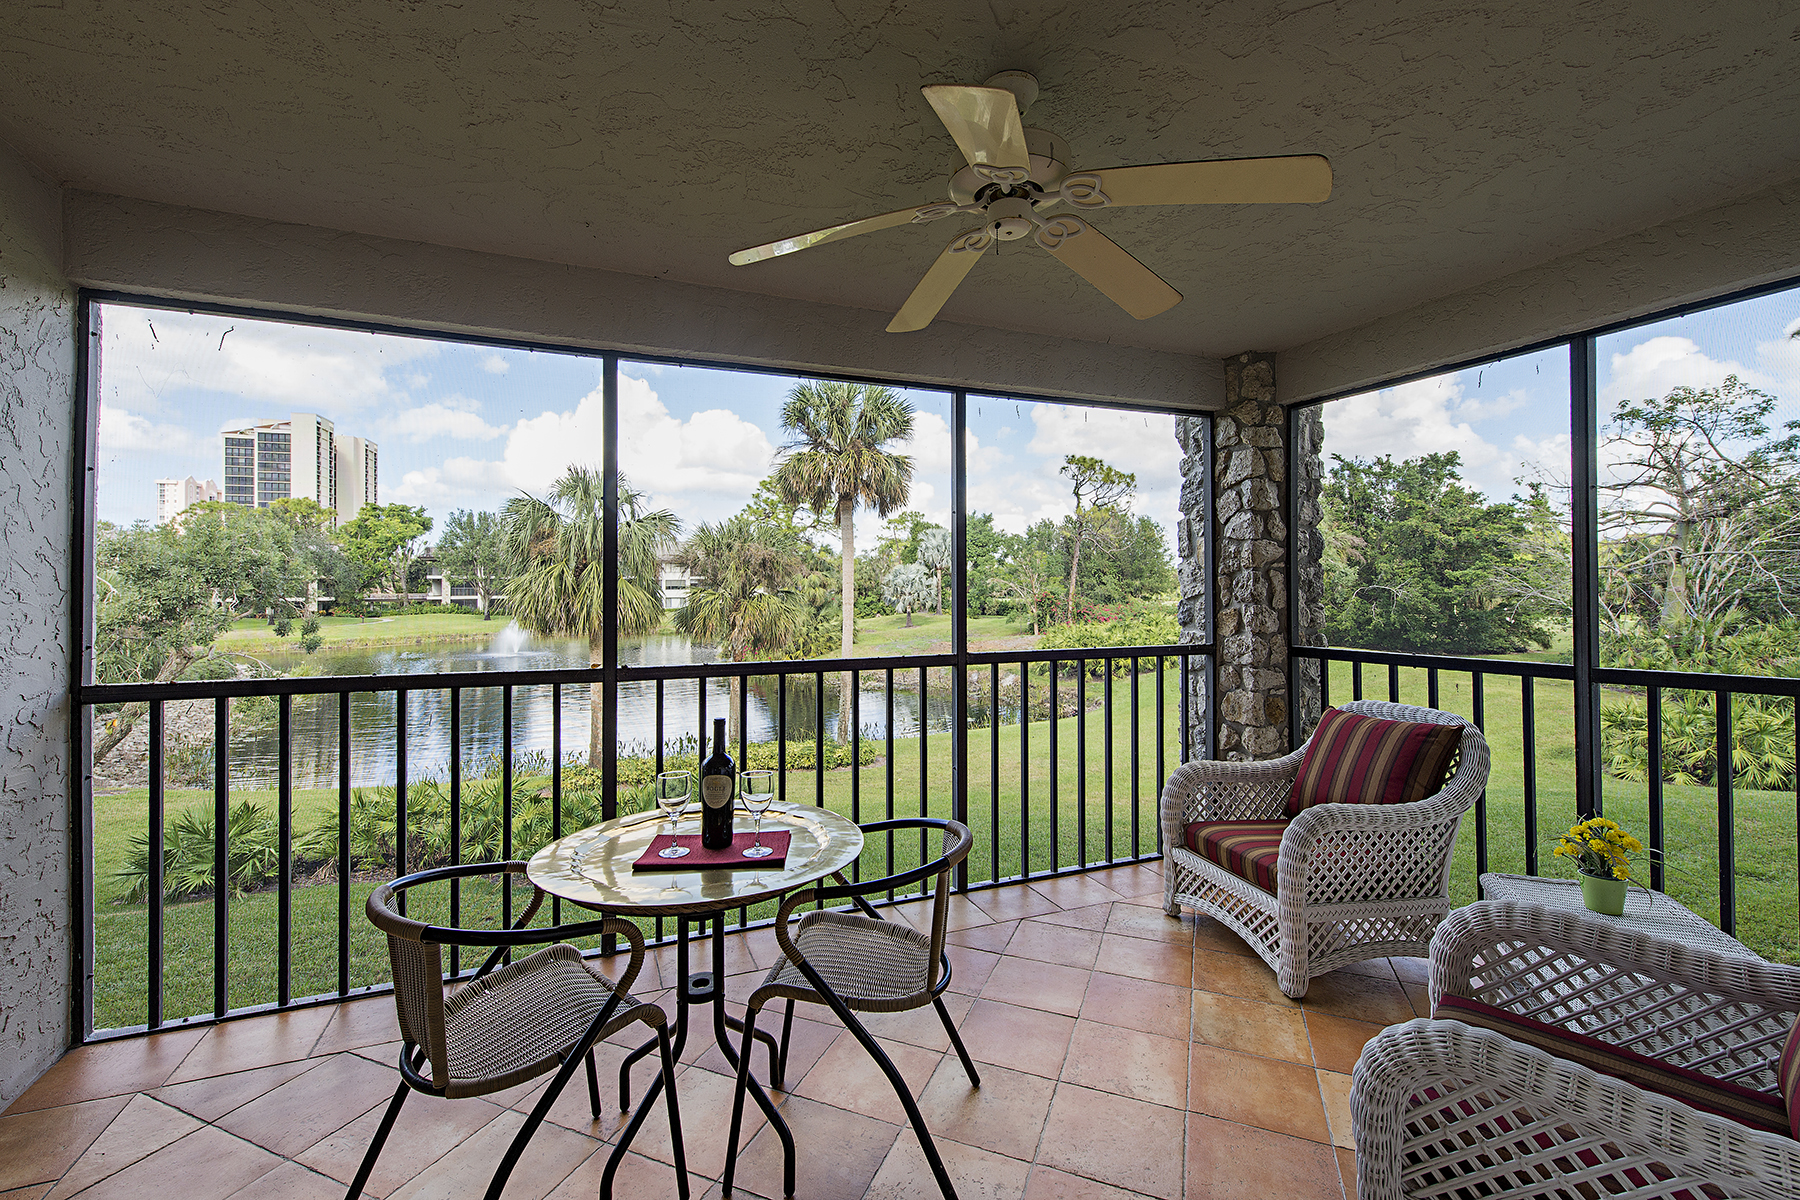 Condominium for Sale at PELICAN BAY - SANCTUARY 5950 Pelican Bay Blvd 123, Naples, Florida 34108 United States